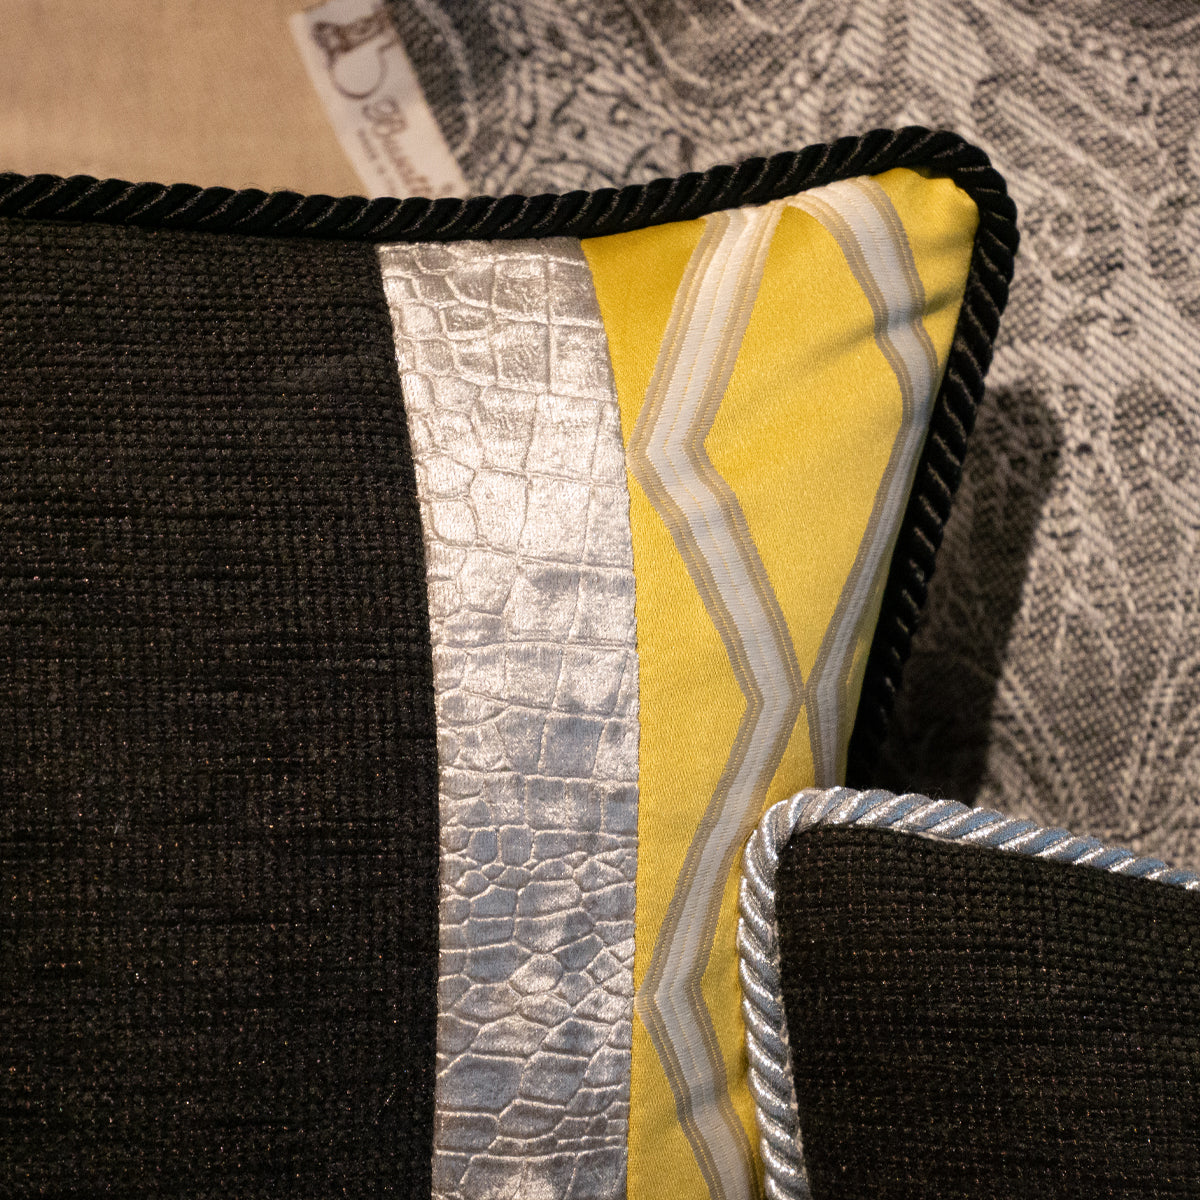 42cm角 コラージュクッション Black&Yellow&Silver Geometry with Black Rope